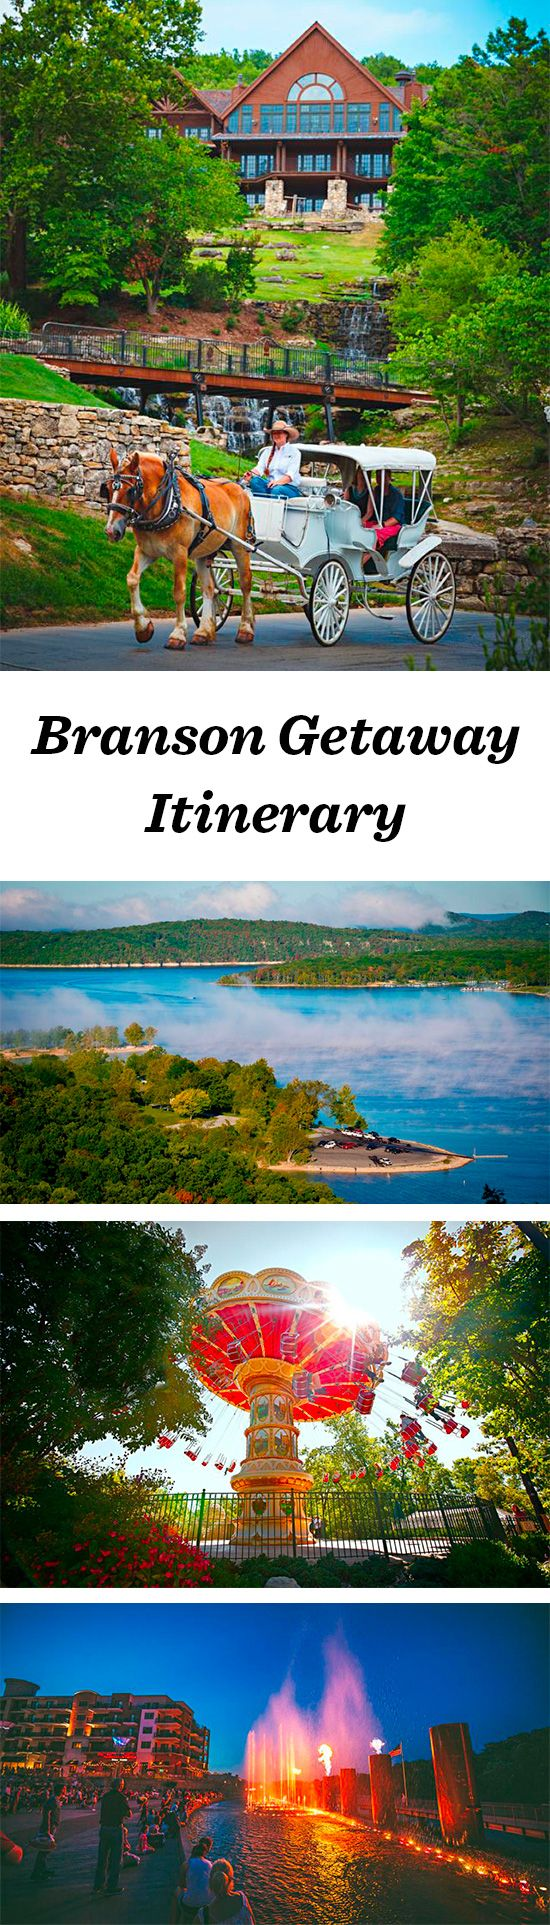 Hundreds of shows and lakeside fun make Branson, Missouri, a prime vacation destination: http://www.midwestliving.com/travel/missouri/branson/branson-getaway-itinerary/ #branson #missouri #vacation